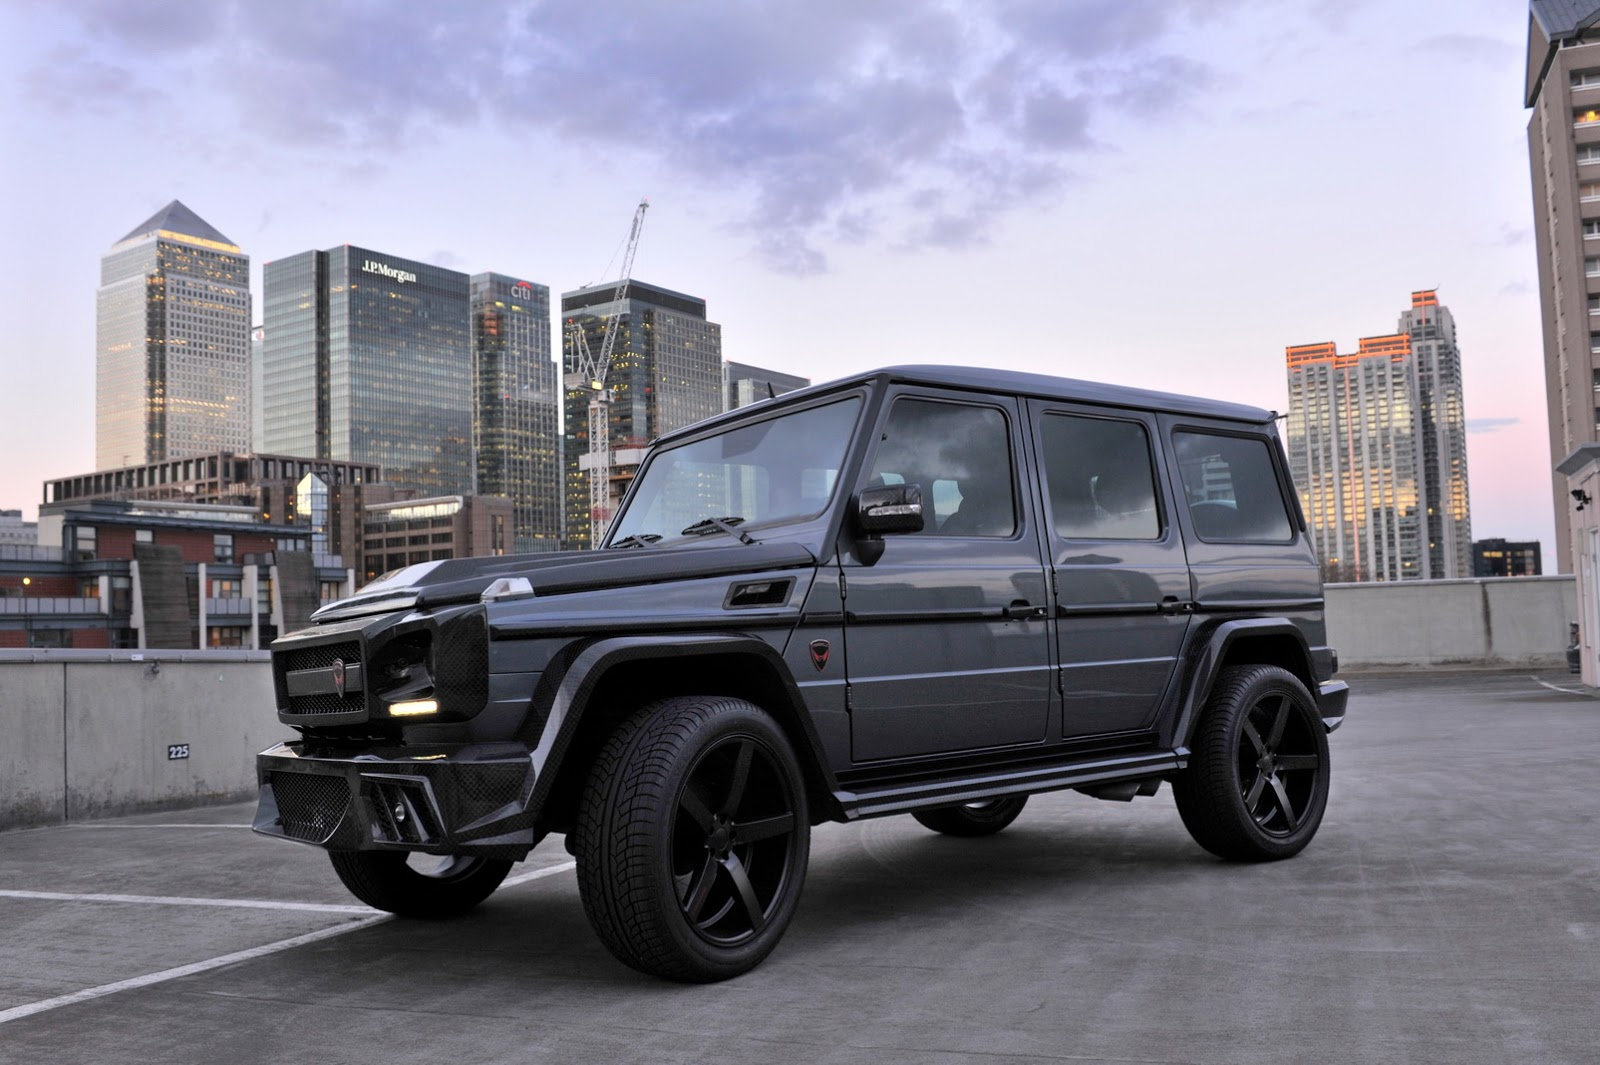 Mercedes G63 Amg By Prindiville Gets Lizard Like Looks